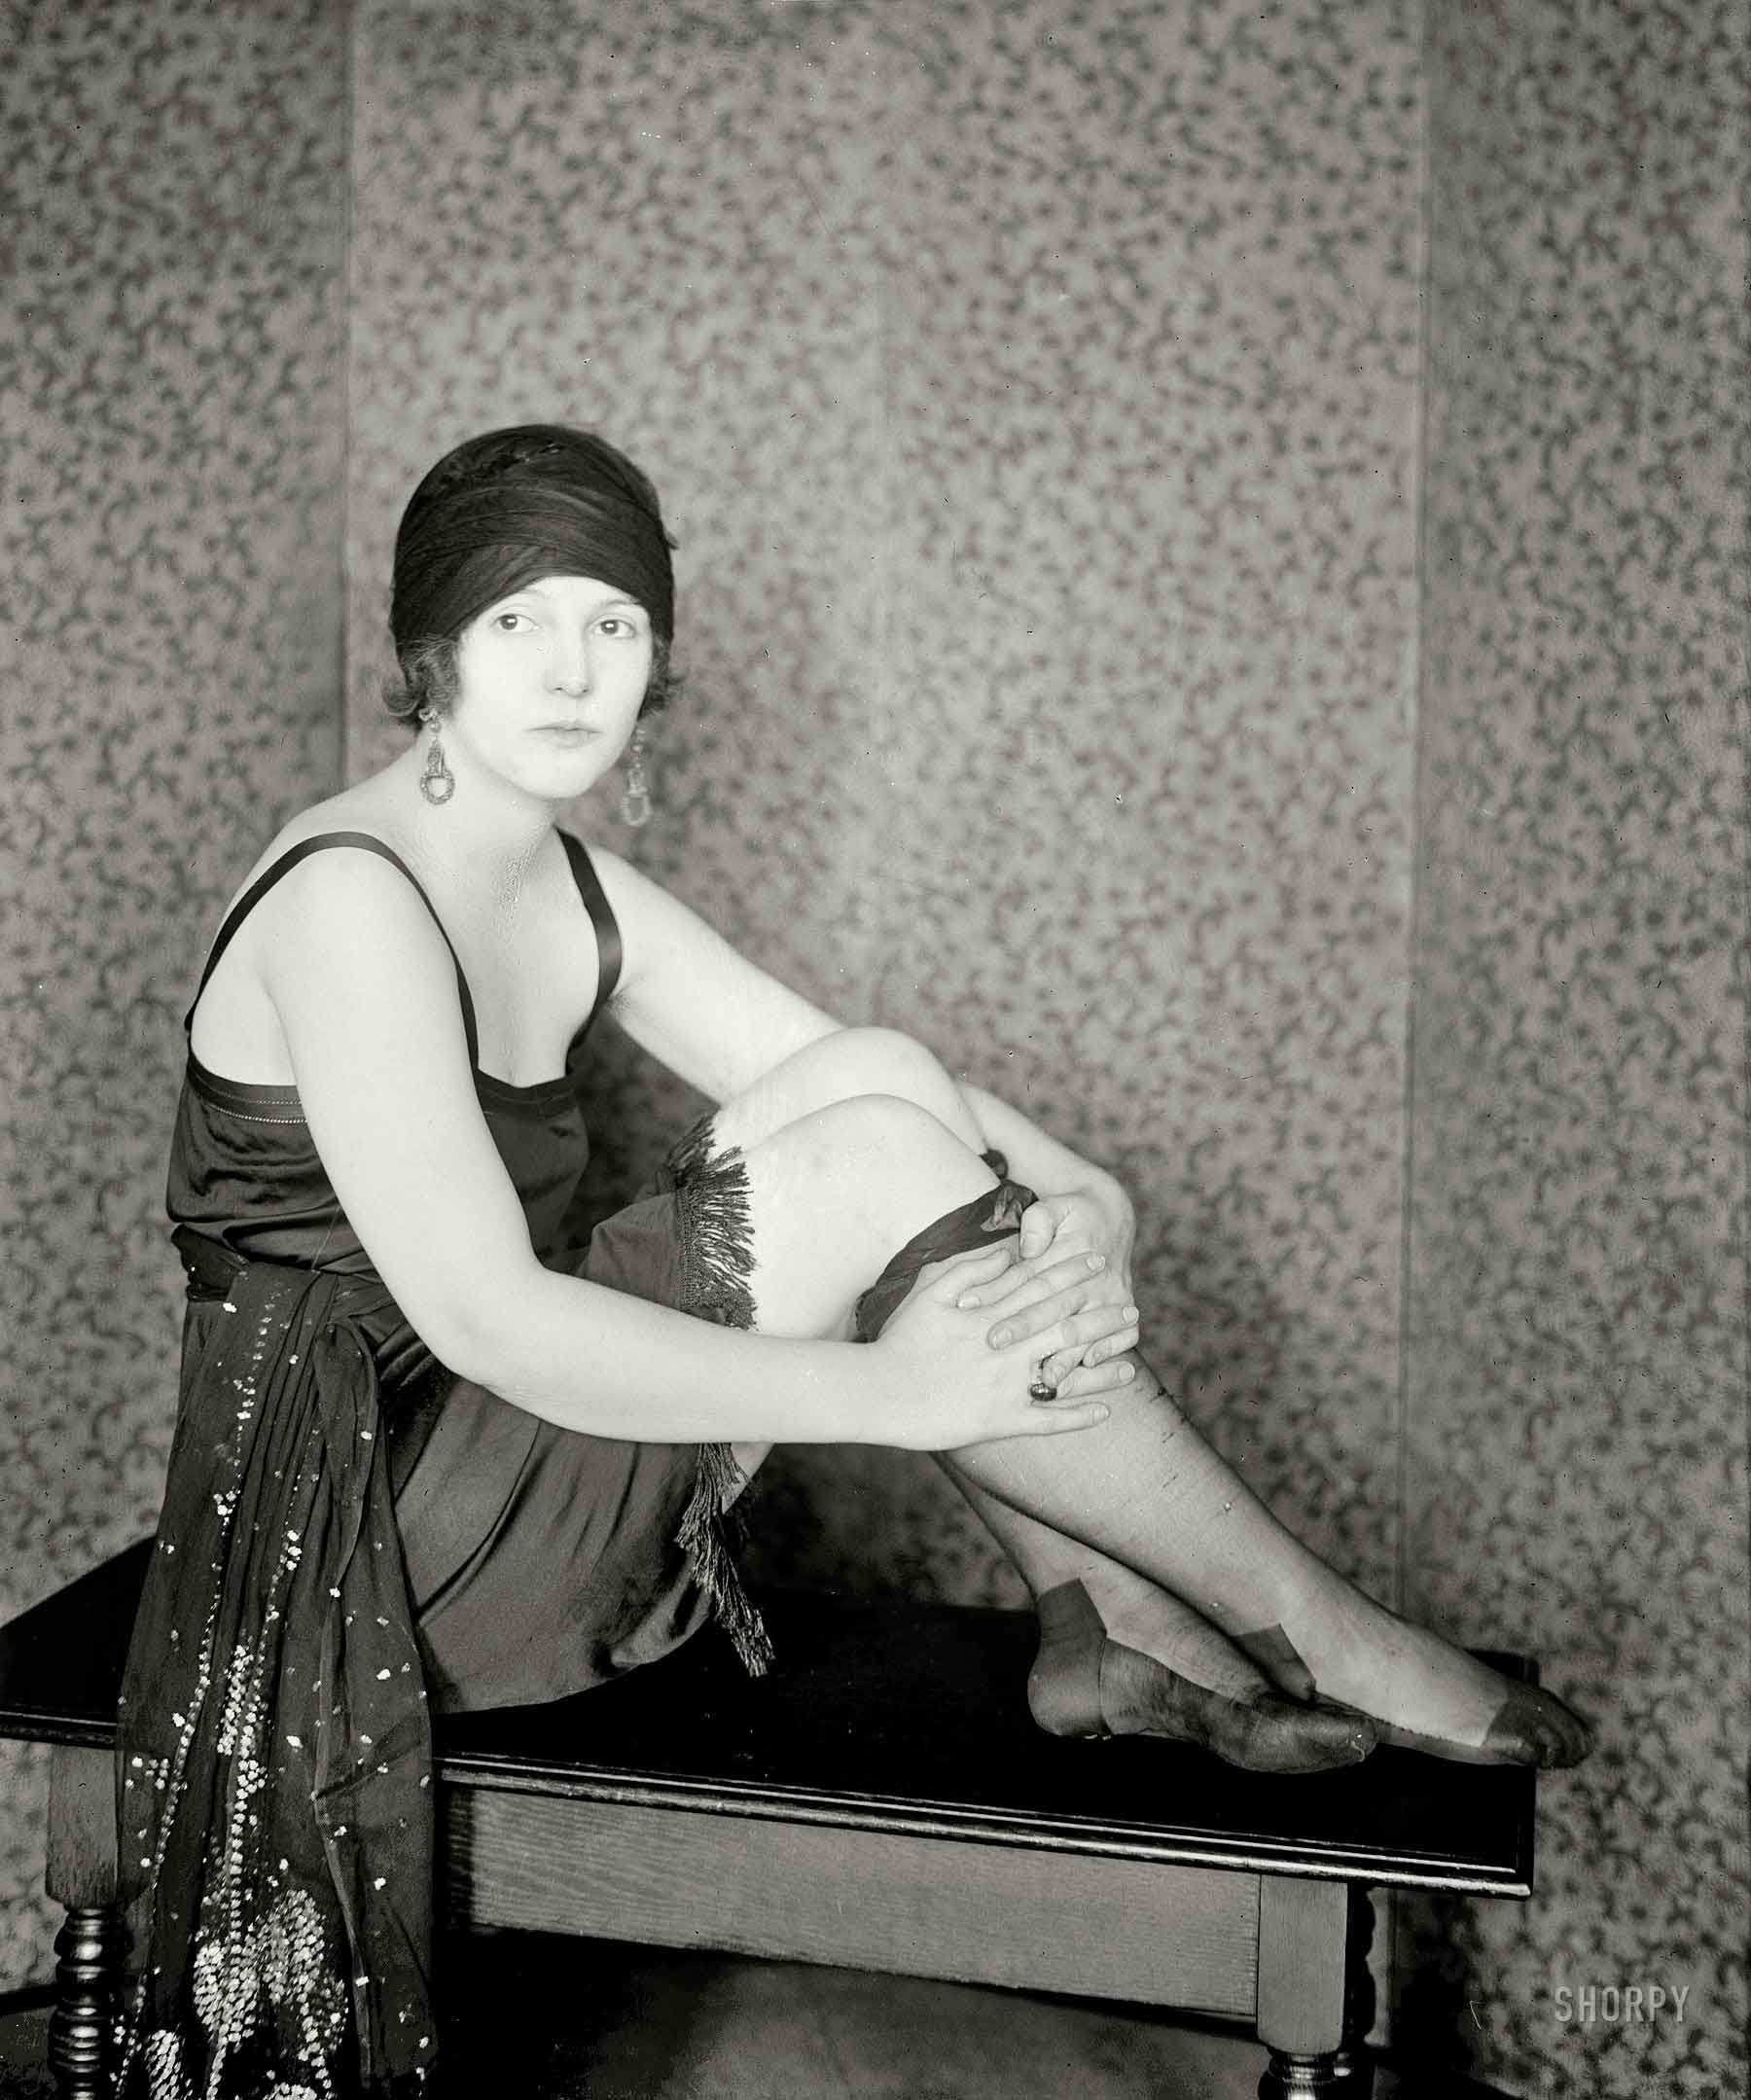 Early New York society flapper in 1922. In the USA that year, the US